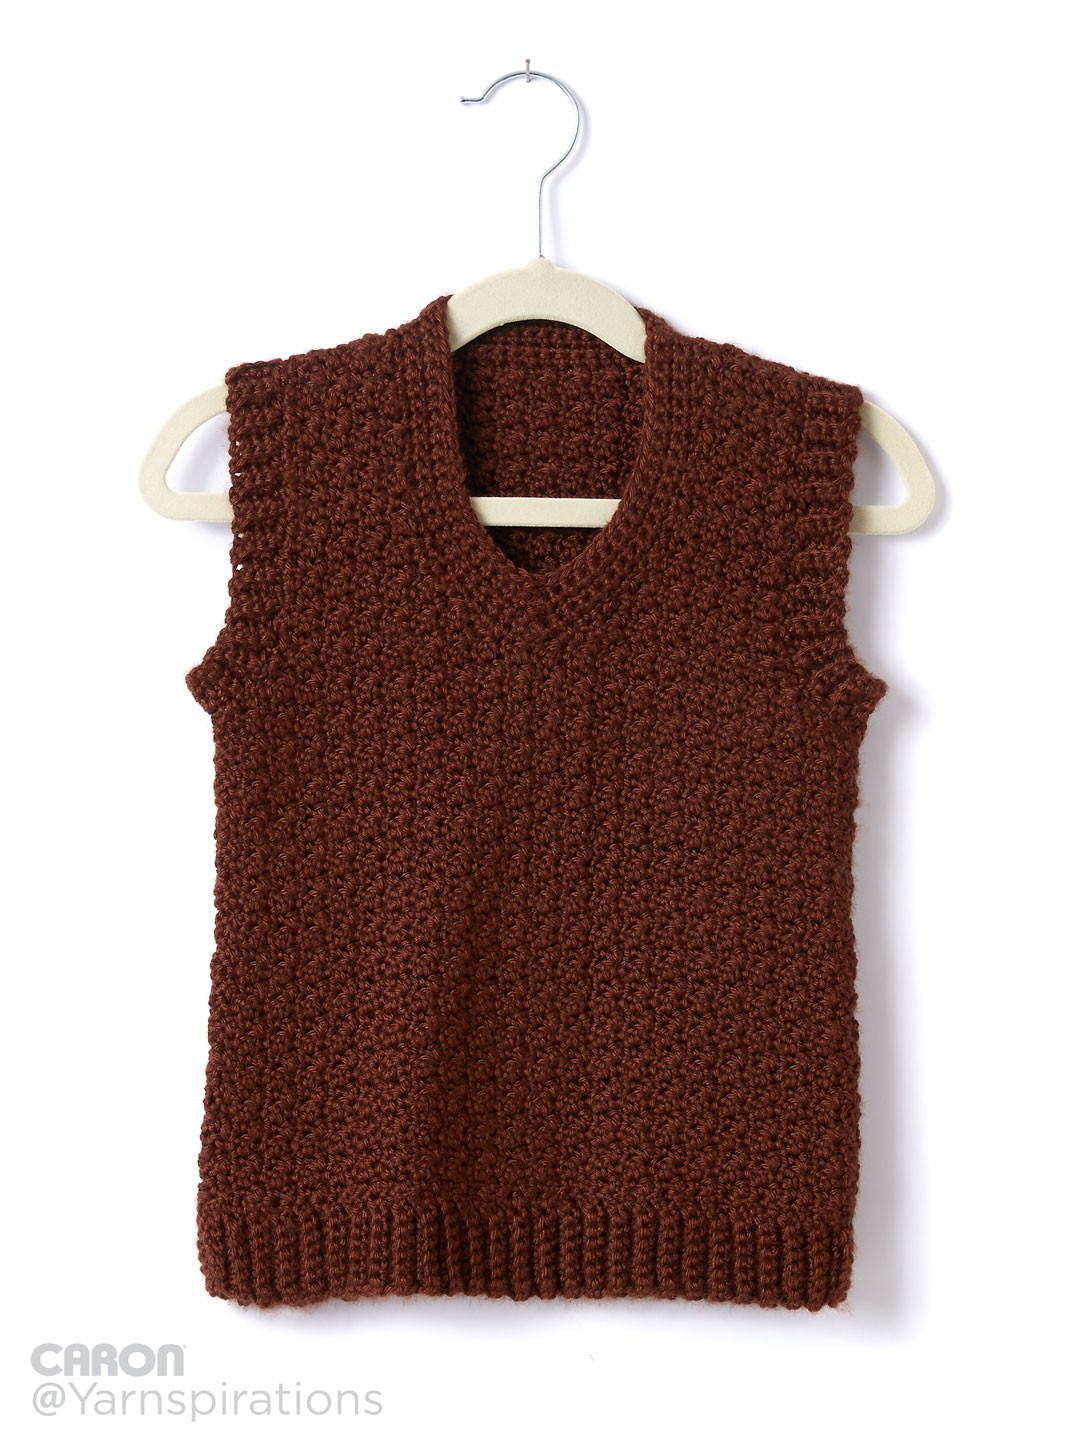 Crochet Patterns For Childrens Vests : Caron Childs Crochet V-Neck Vest, Crochet Pattern ...